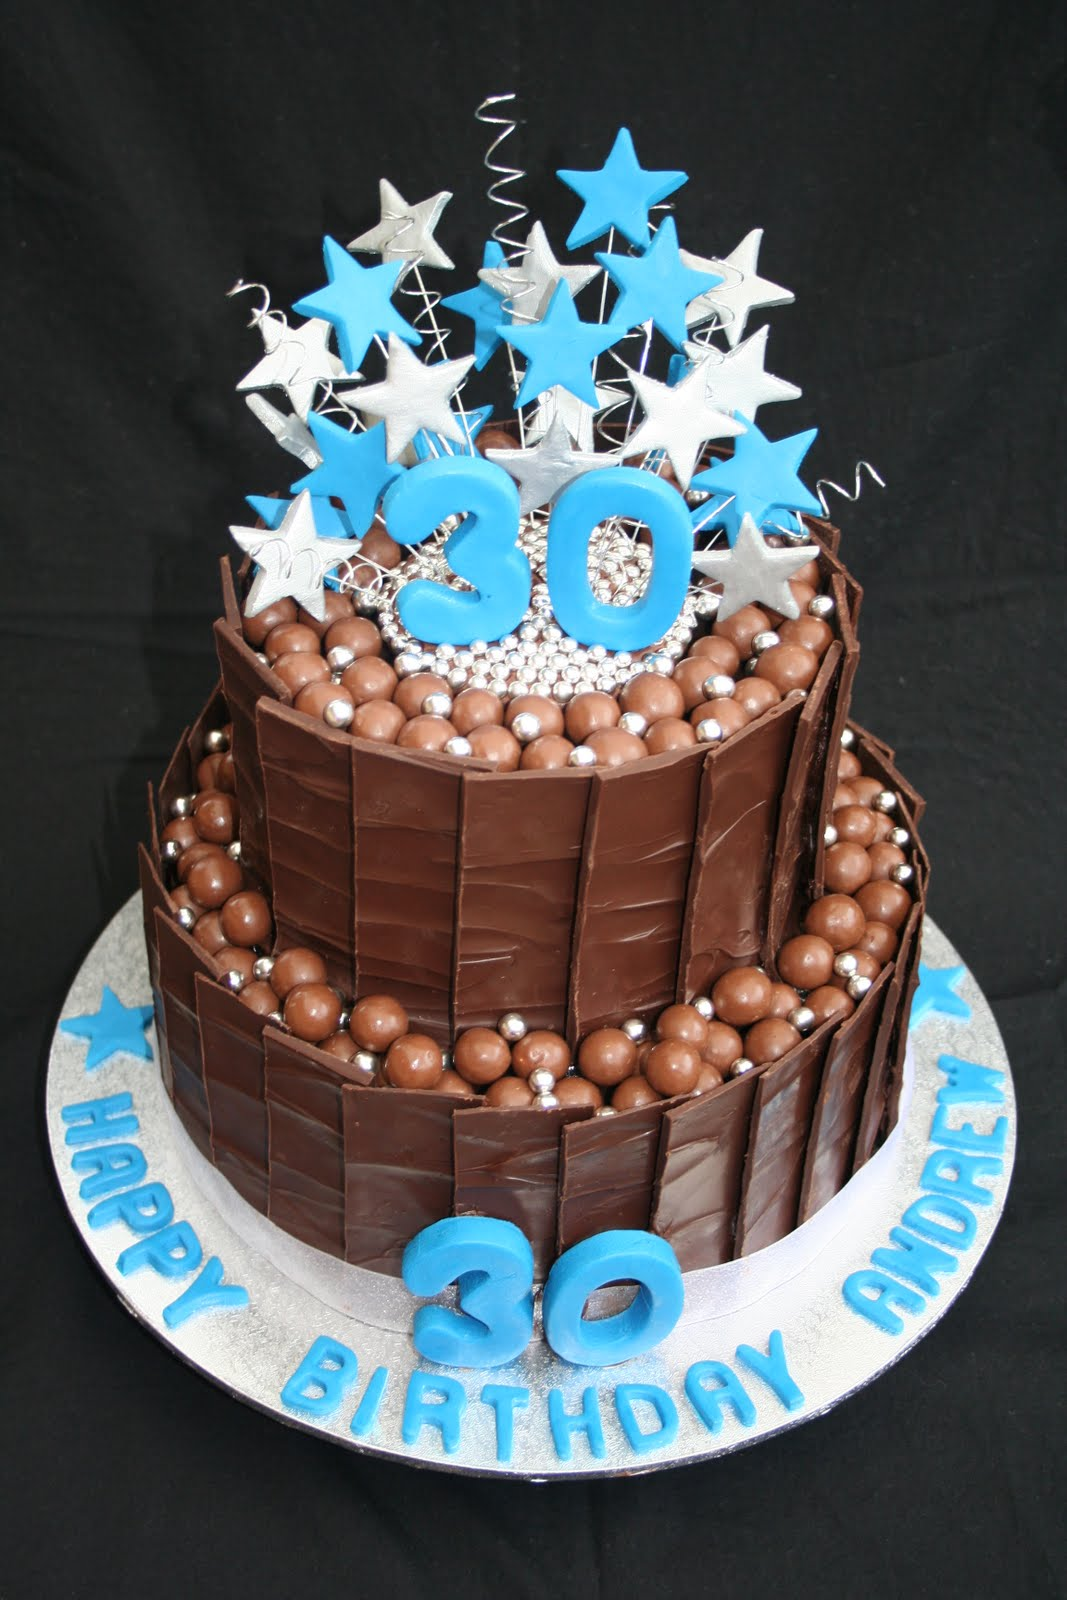 art cakes picshttp3A2F2Fwww.linkcrafter.com2Fwp content2Fuploads2F20162F062Fsmart th birthday cake ideas cake ideas 30th birthday woman cool cake ideas for 30th birthday Photo Gallery Of Creative Cake Designs For Your Birthday Party